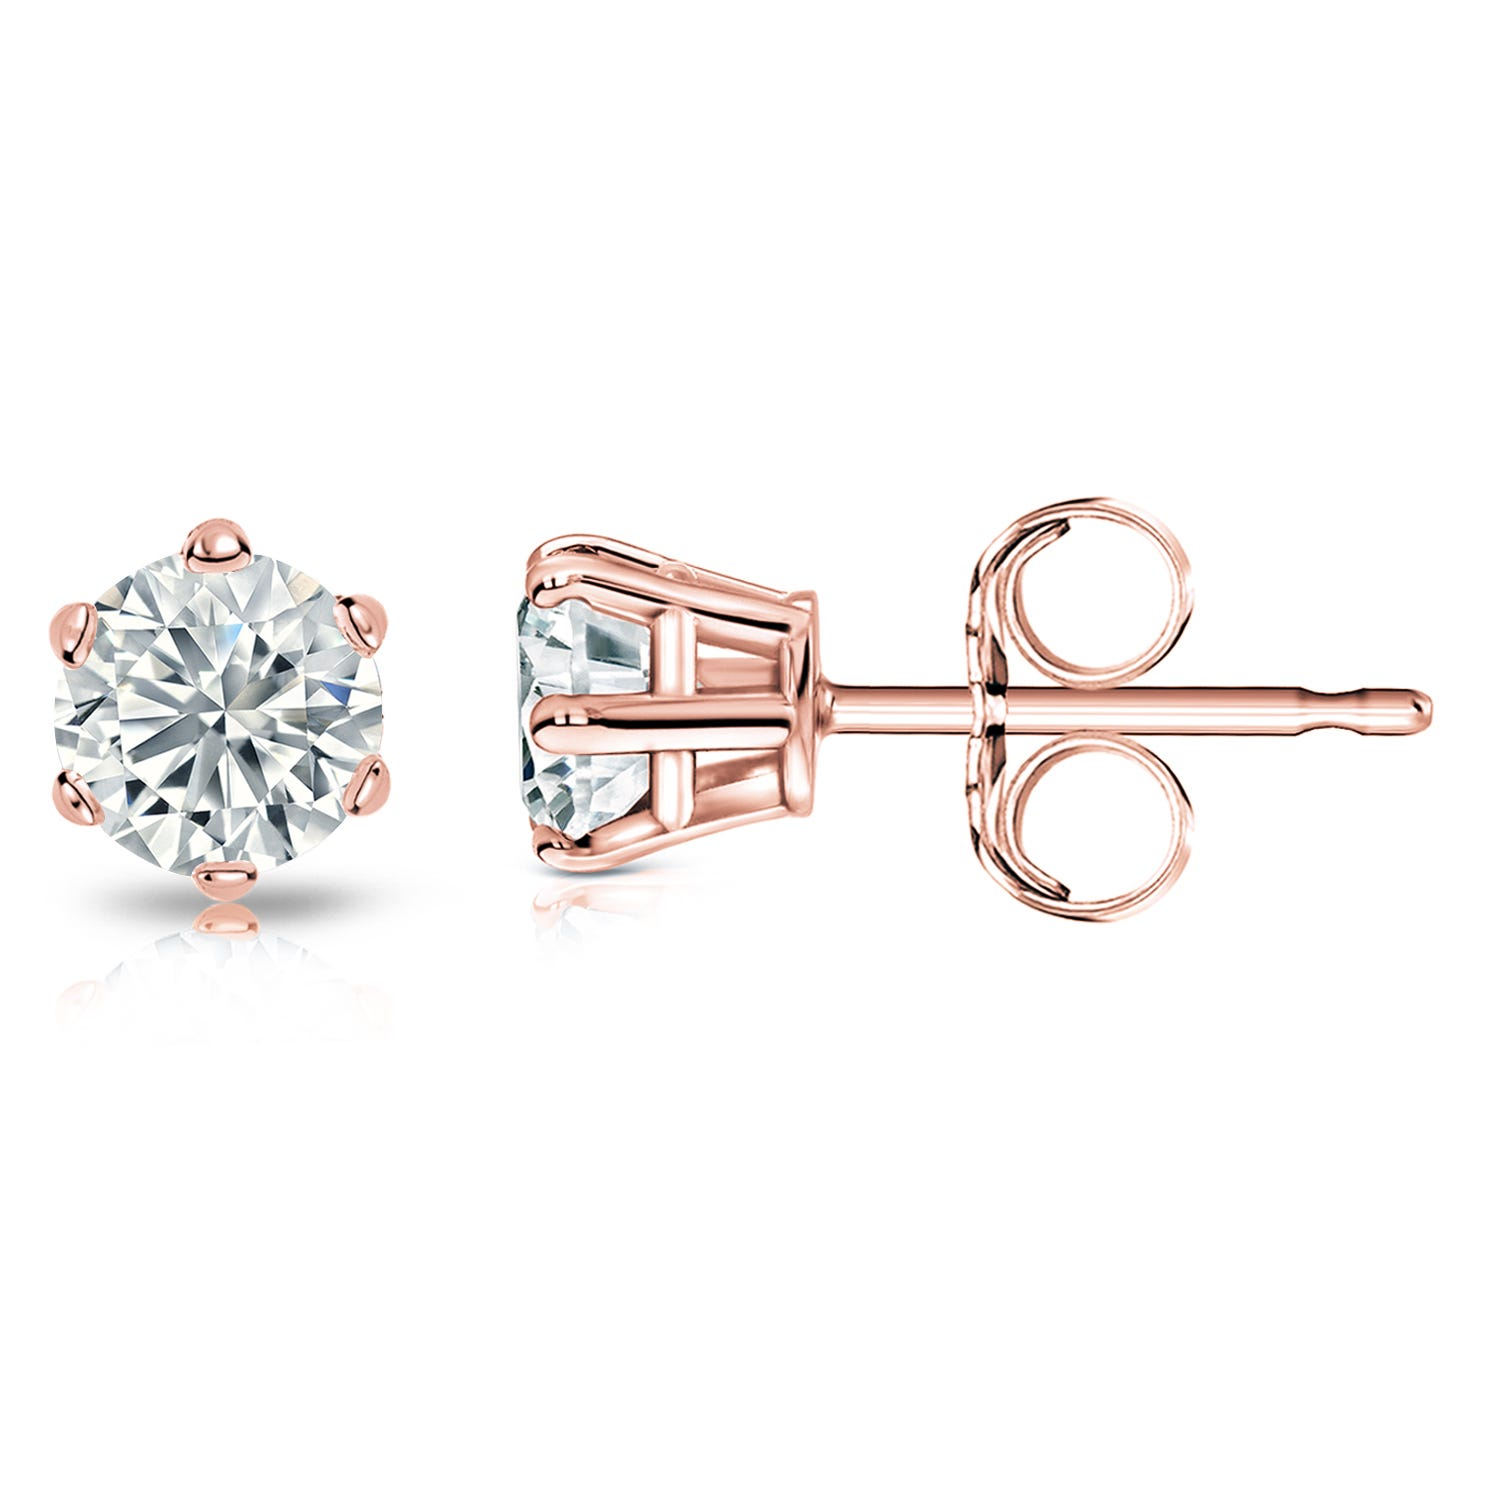 Round Diamond 1ctw. (IJ-VS2) Solitaire Stud 6-Prong Earrings in 14K Rose Gold